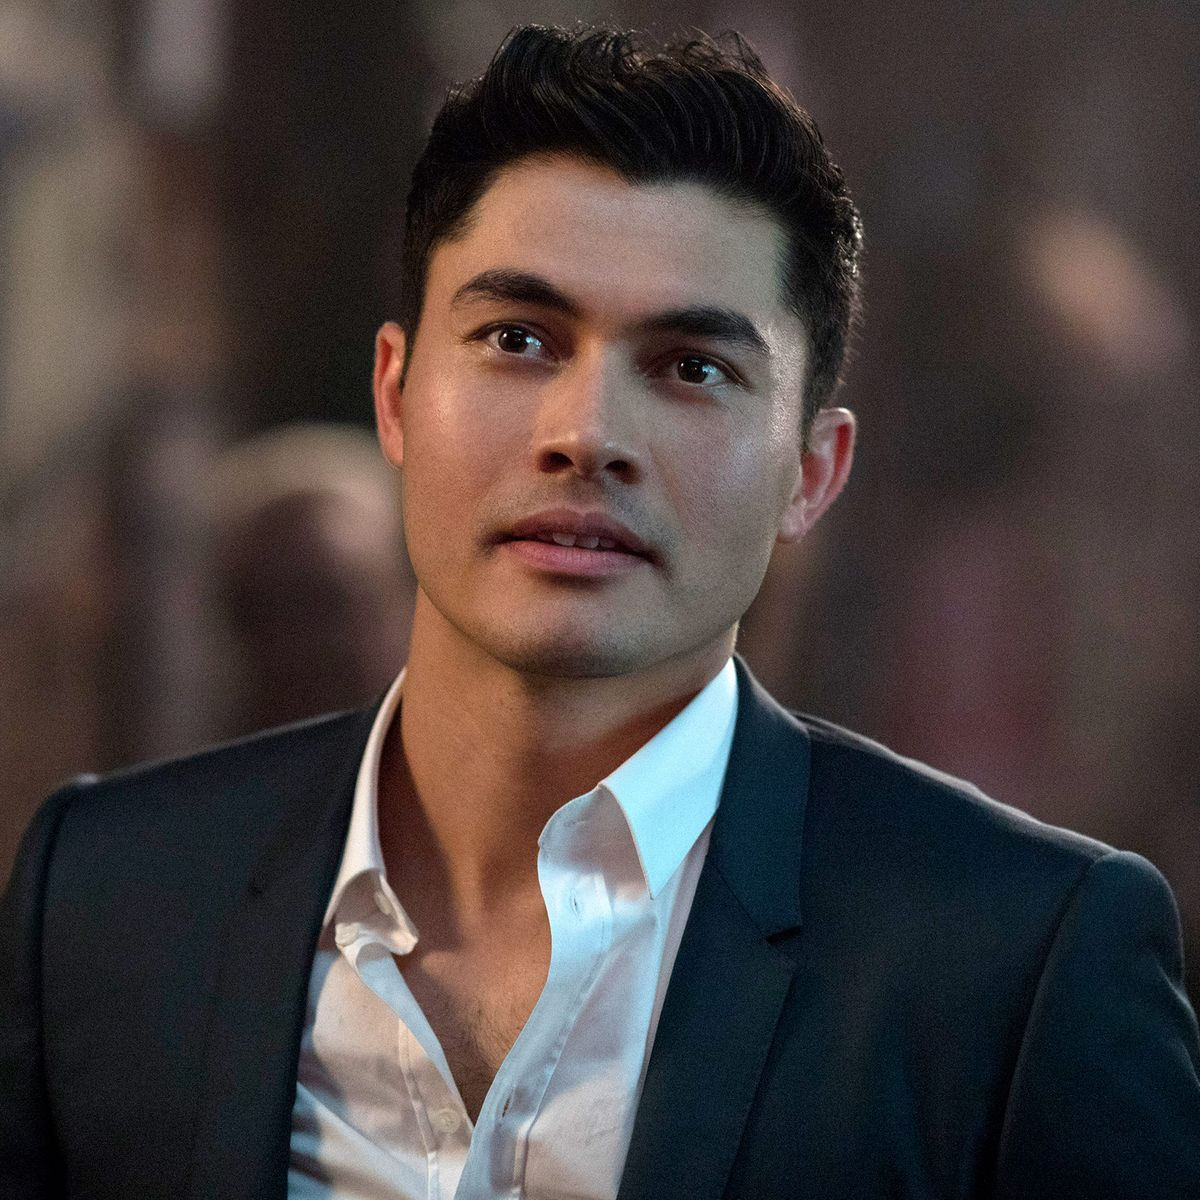 The 33-year old son of father (?) and mother(?) Henry Golding in 2021 photo. Henry Golding earned a  million dollar salary - leaving the net worth at  million in 2021